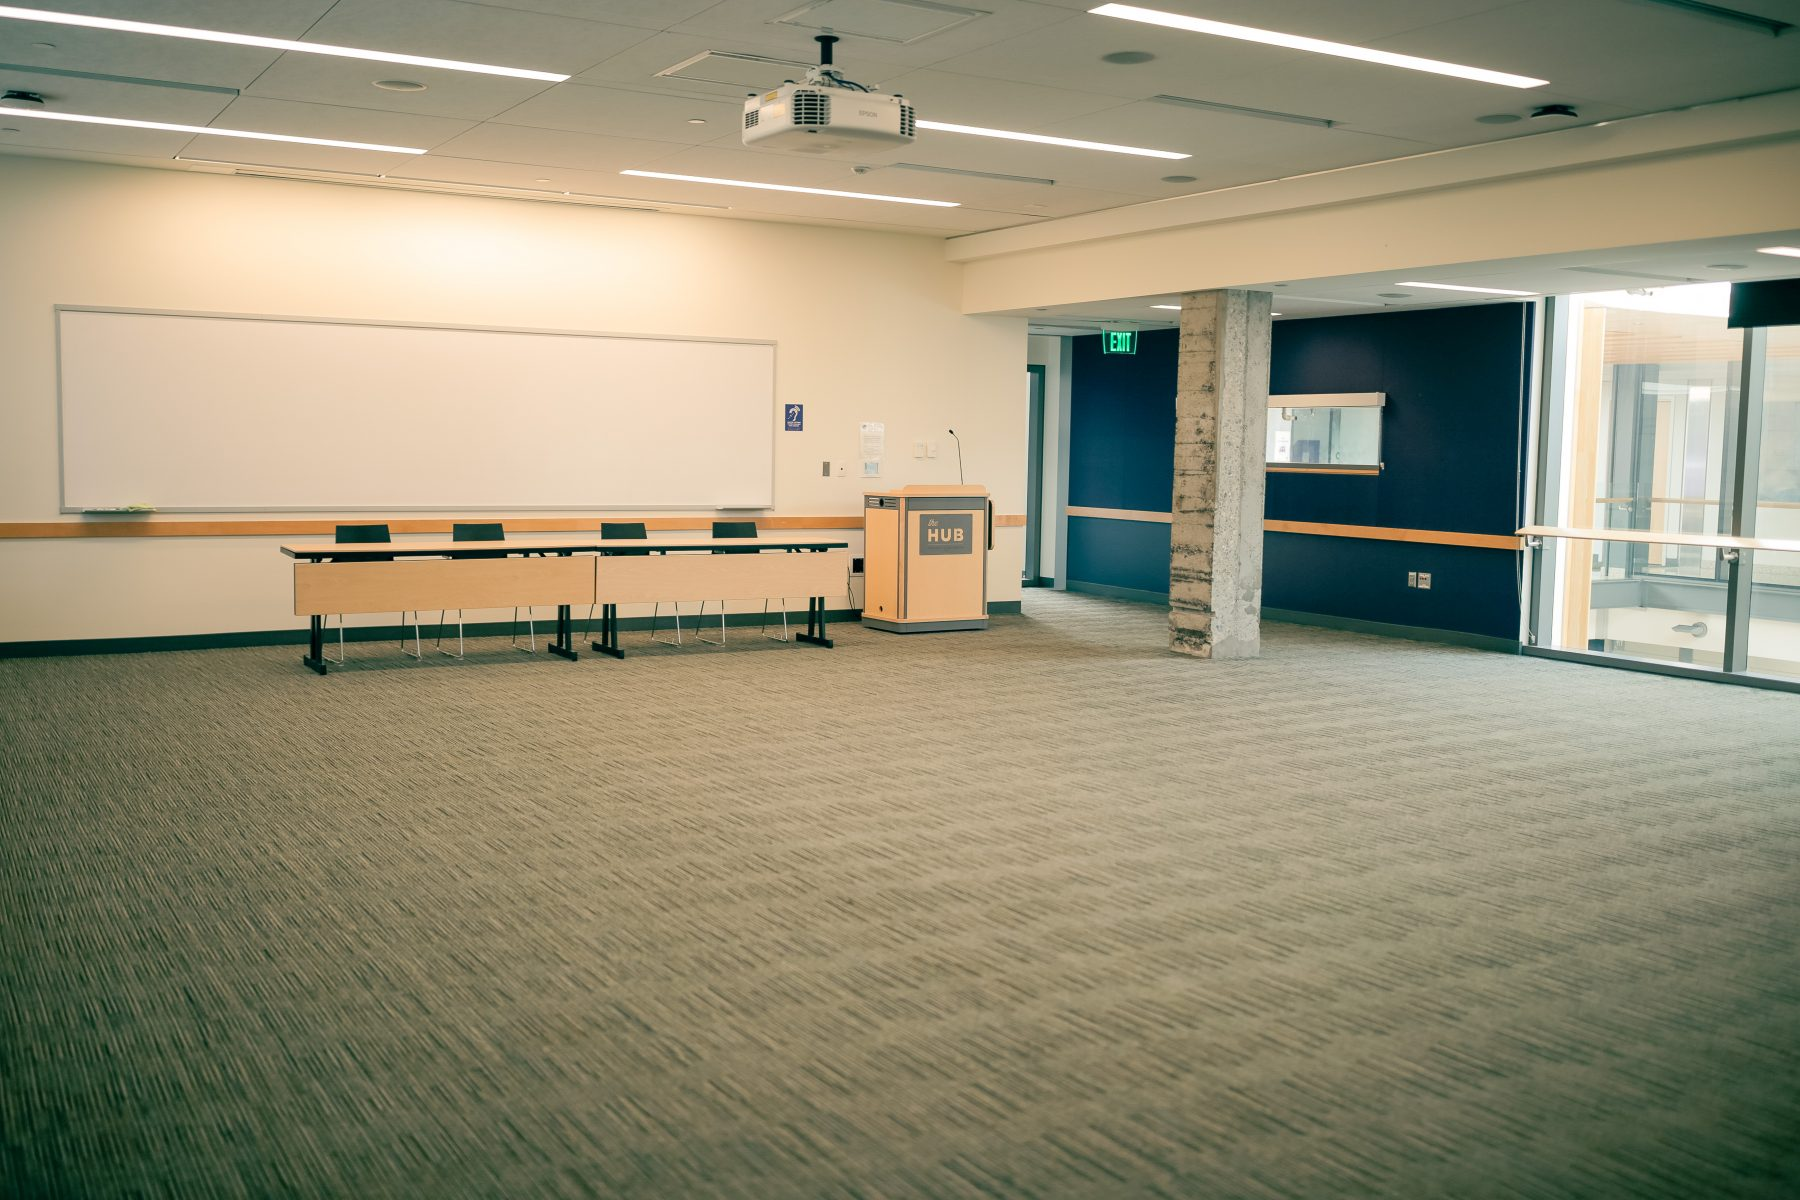 2 Head tables and a meeting room lectern are included in the standard set